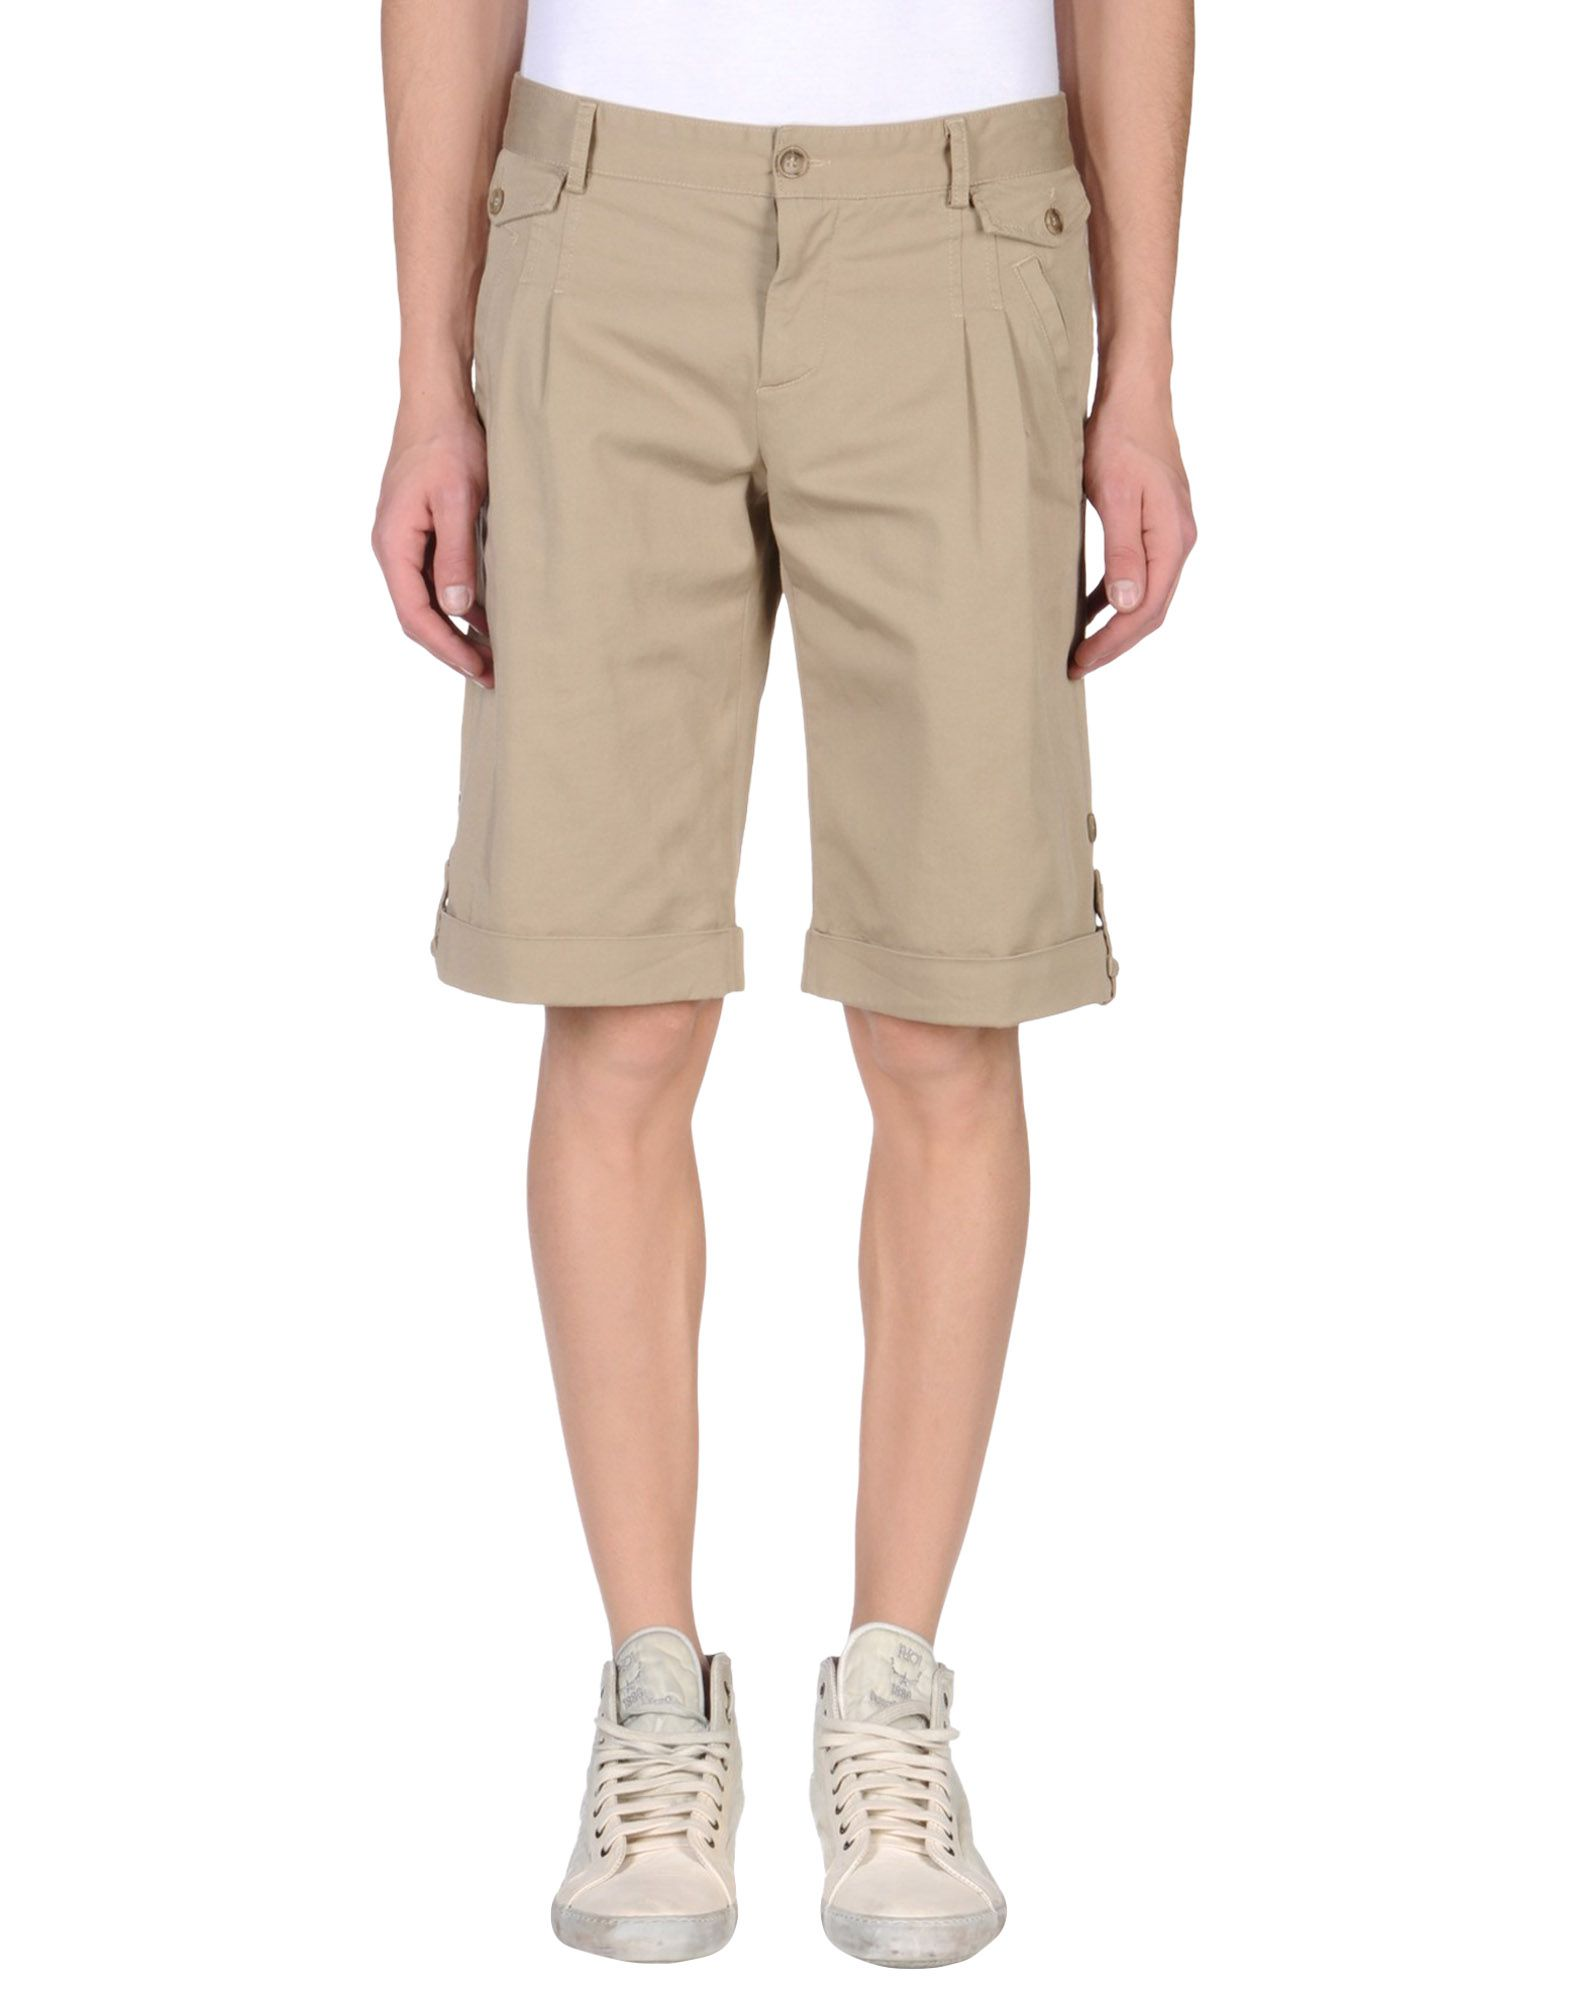 Find great deals on Juniors Shorts at Kohl's today! Juniors' SO® Cuffed Midi Bermuda Jean Shorts. clearance. $ Original $ Juniors' Unionbay Greyson Convertible Skimmer Shorts. clearance. We have all the juniors shorts she loves, including junior khaki shorts.